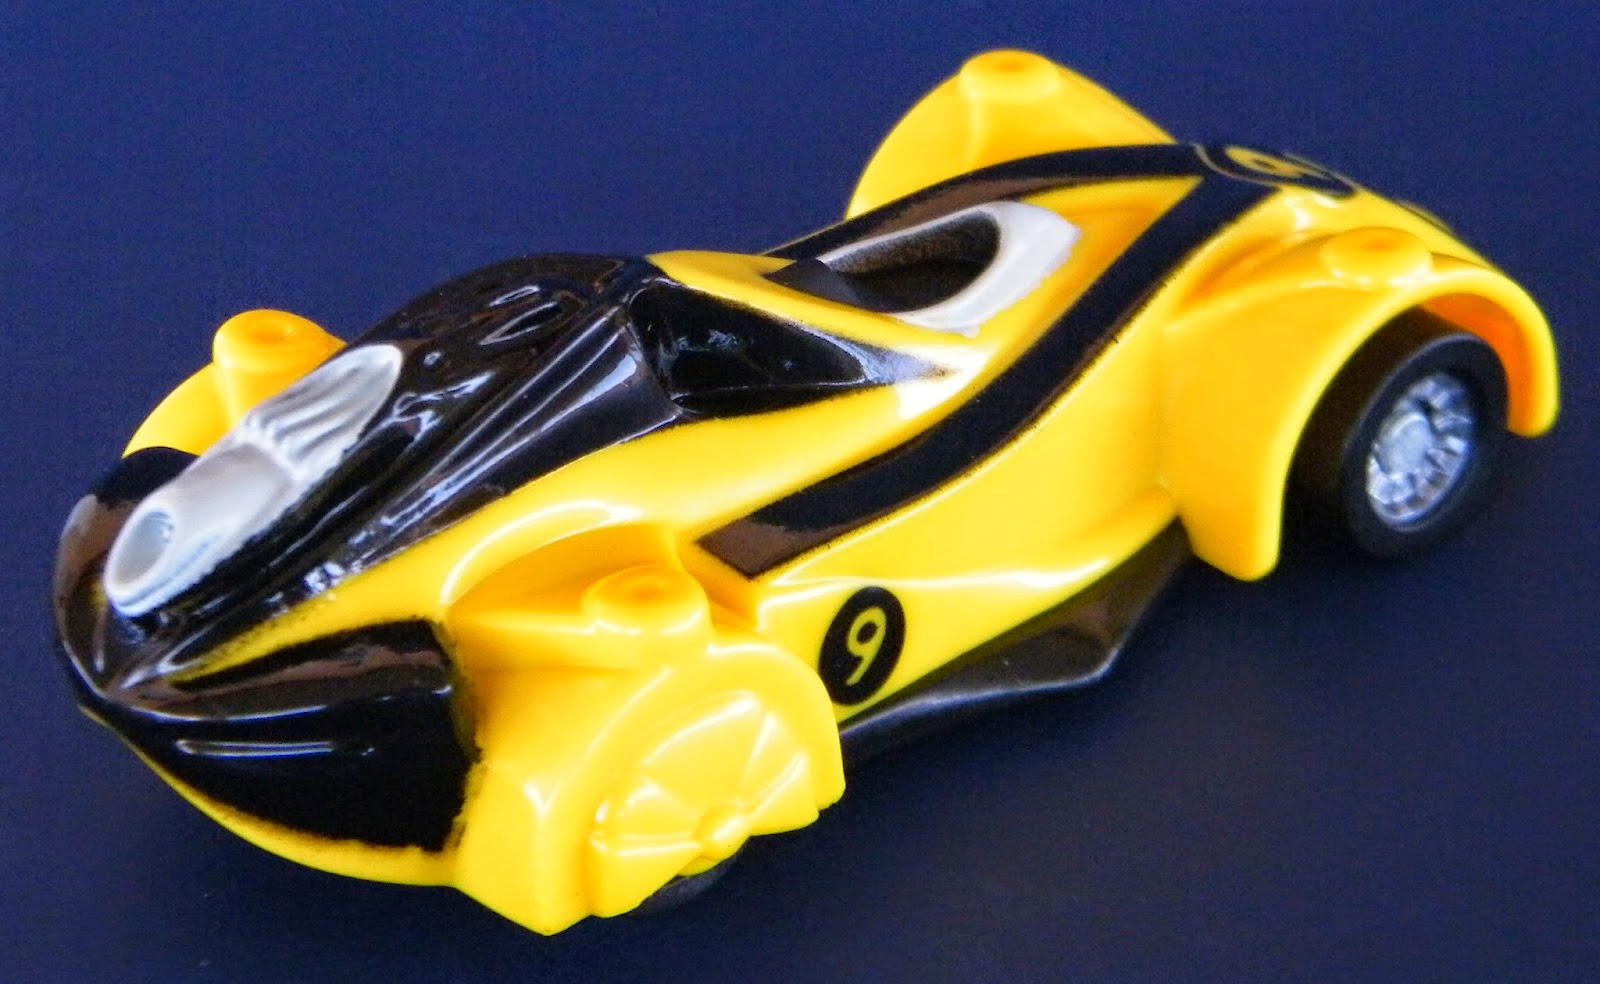 Toys and Stuff: McDonald's 2008 'Speed Racer' Movie Cars - No. 2 Racer X's Race Car